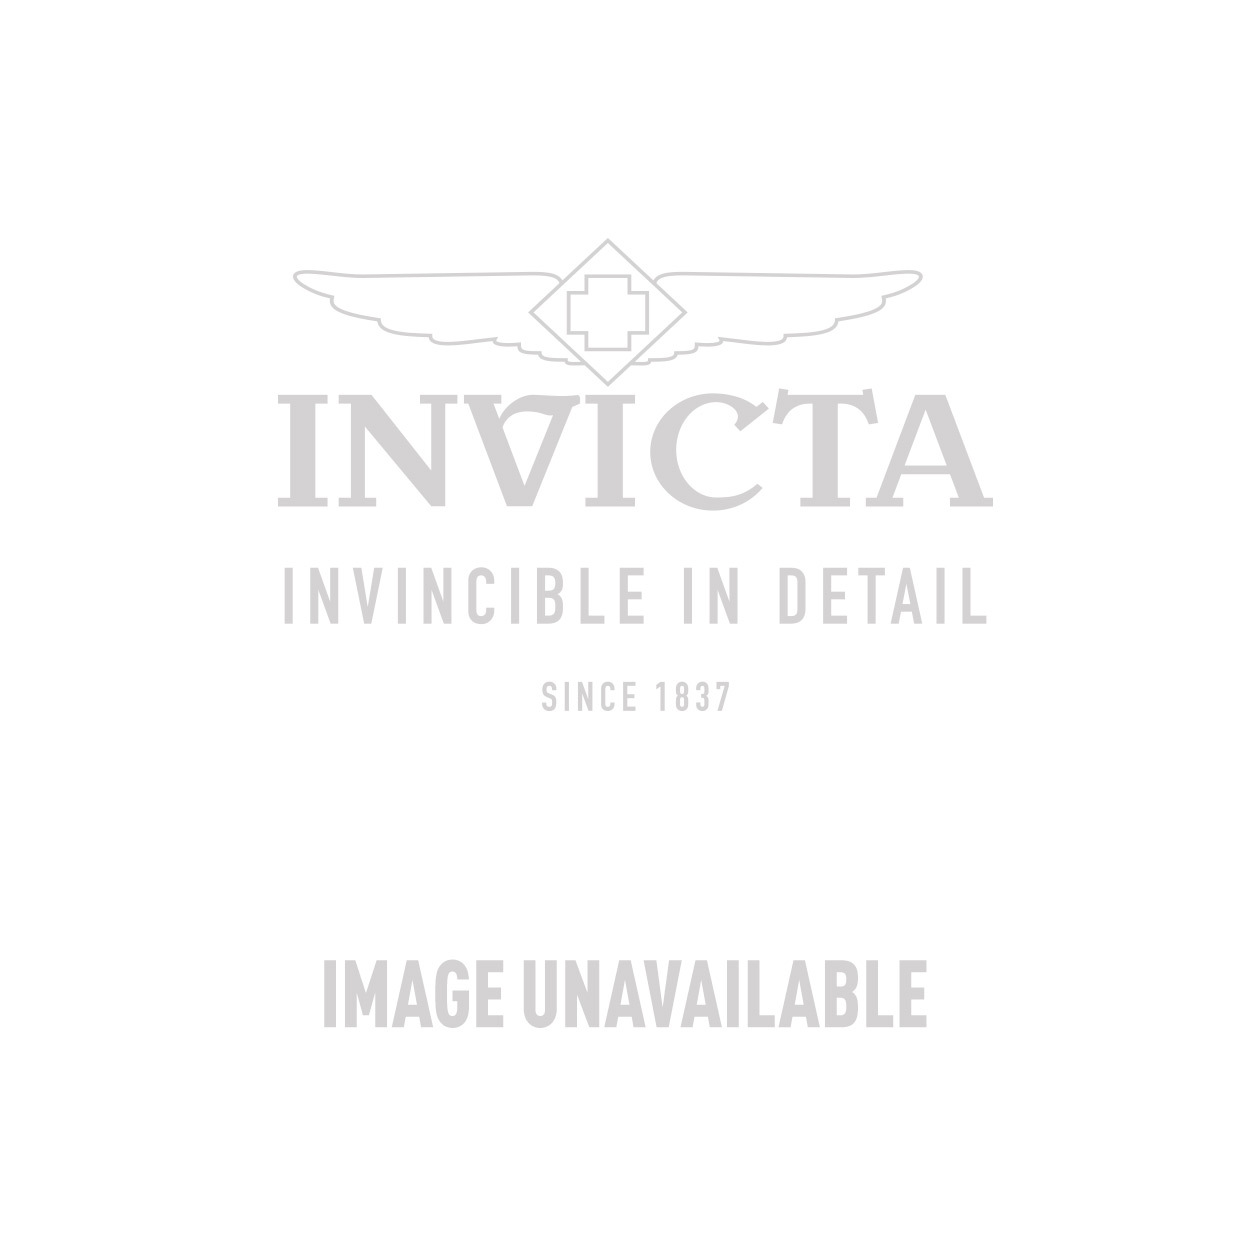 Invicta Speedway Quartz Watch - Rose Gold, Black case with Brown tone Leather band - Model 10711